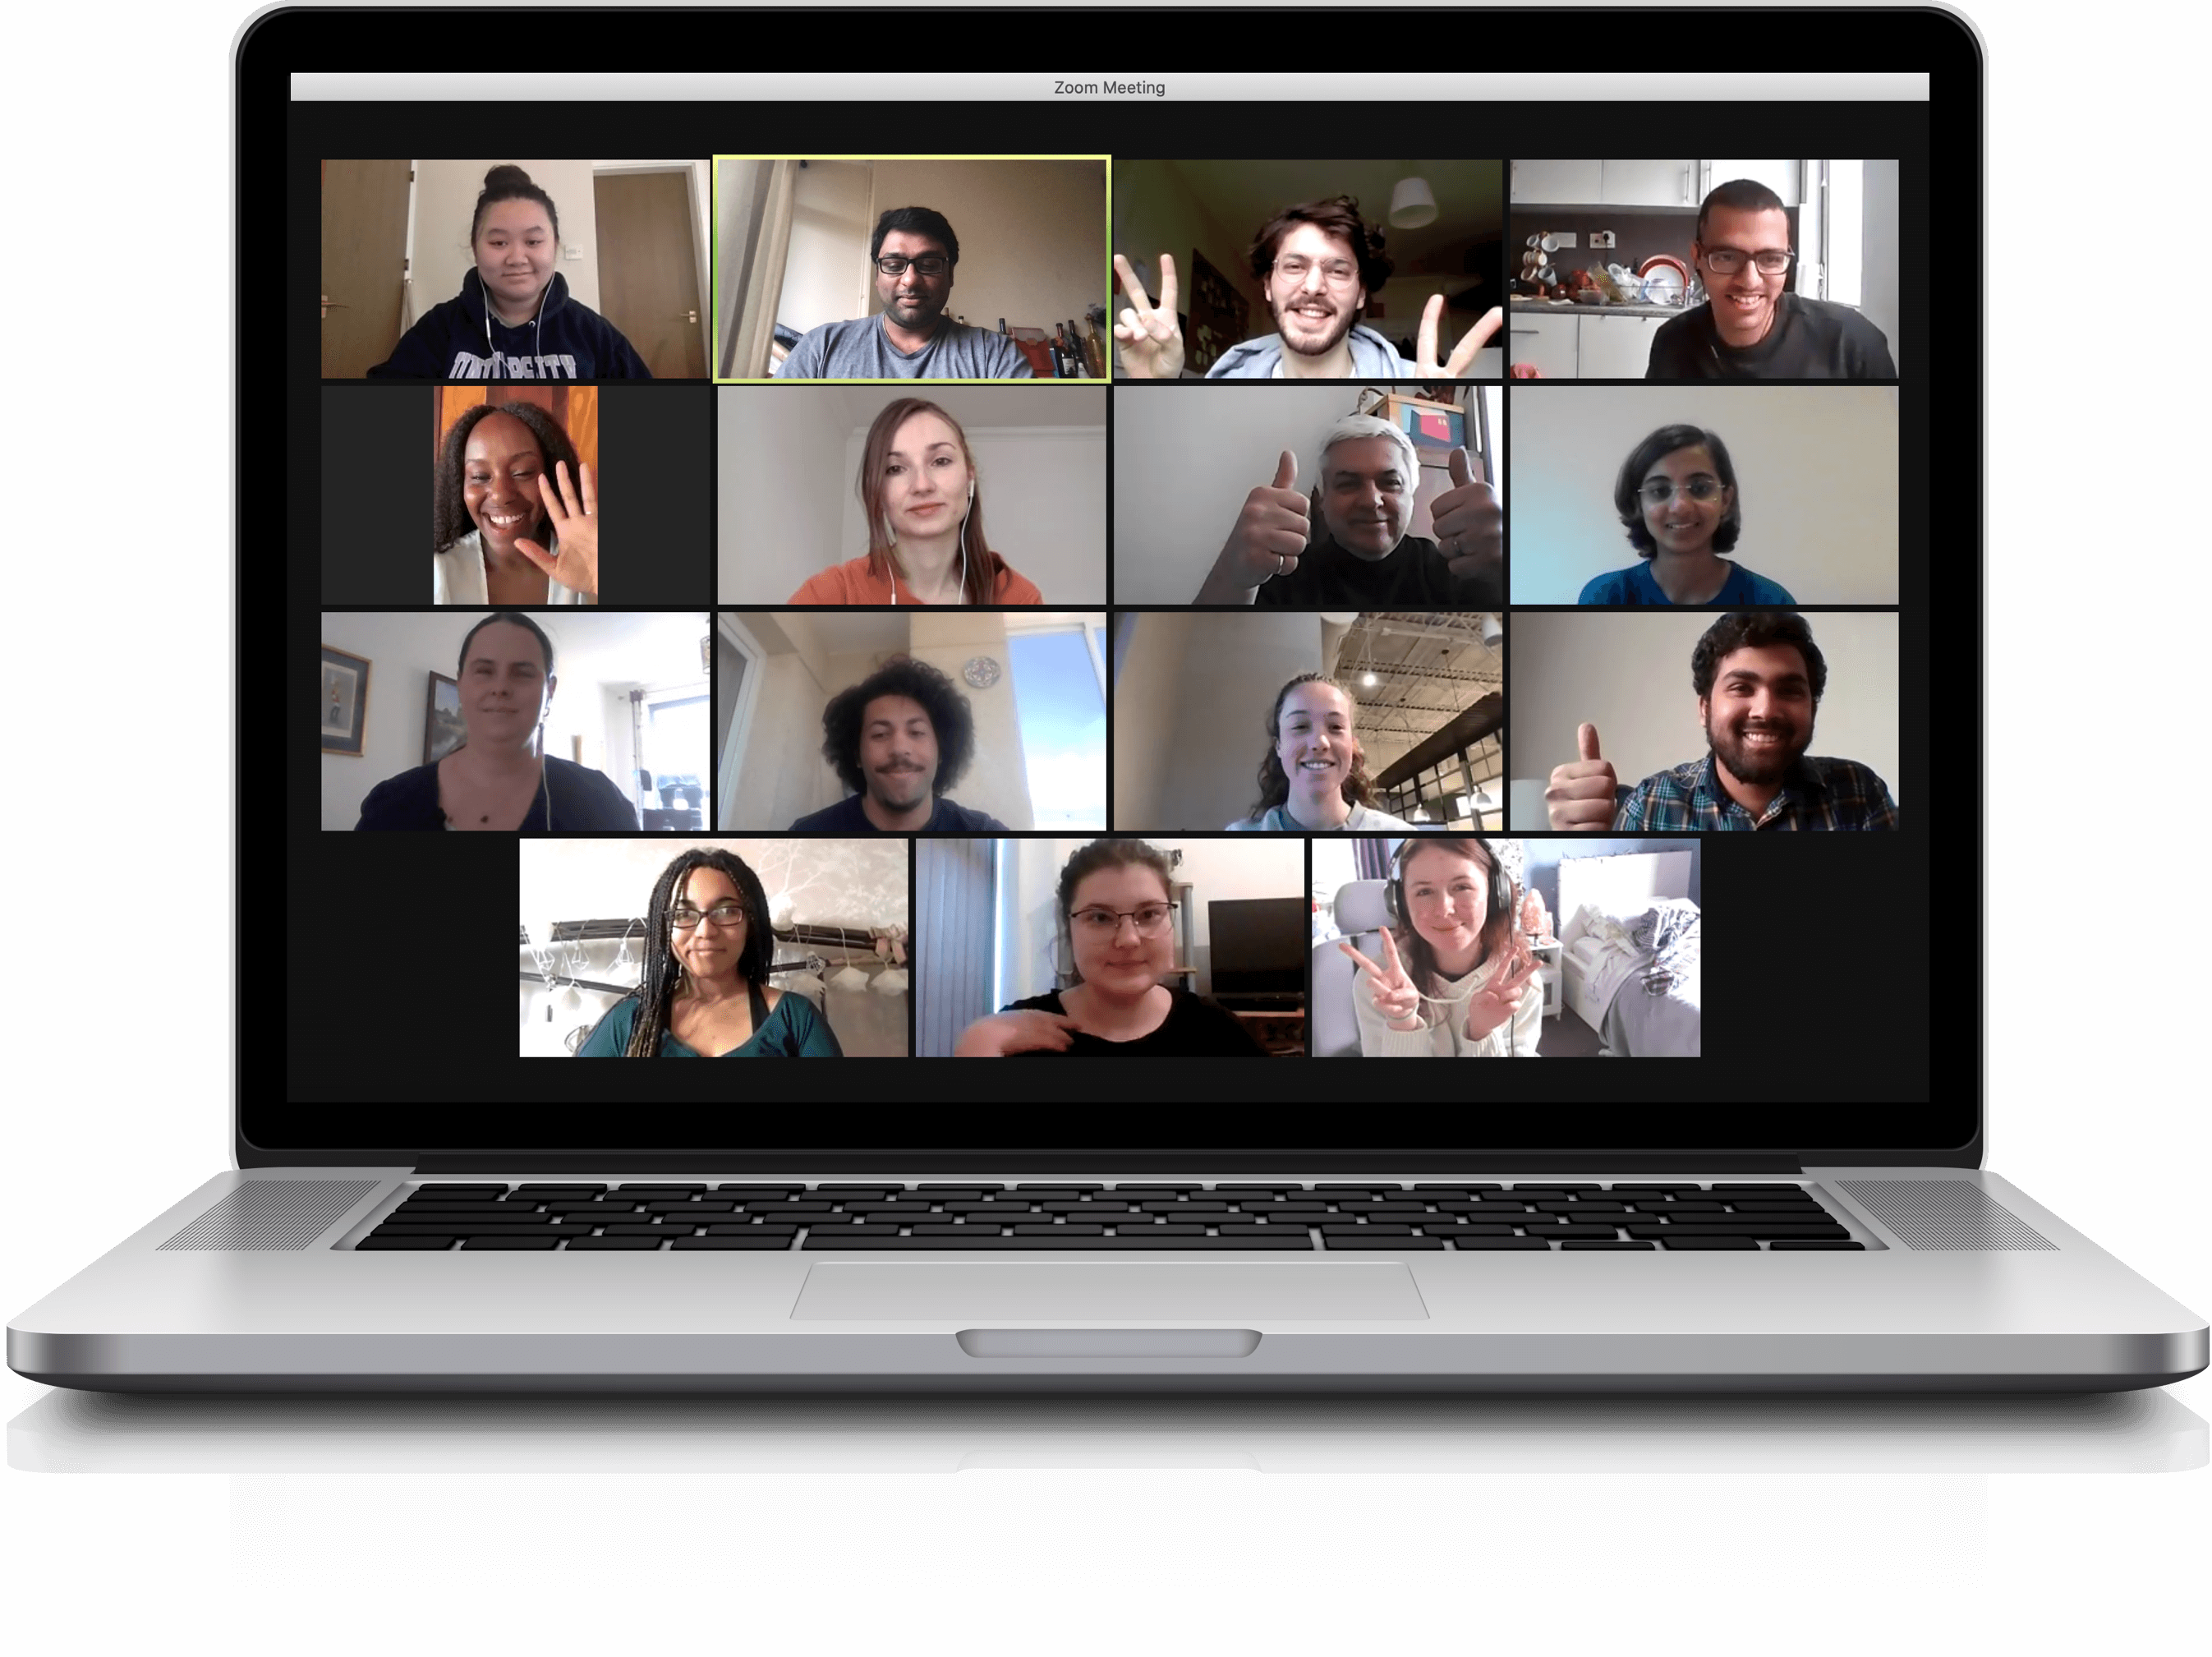 The screenshot of our team from the online meeting